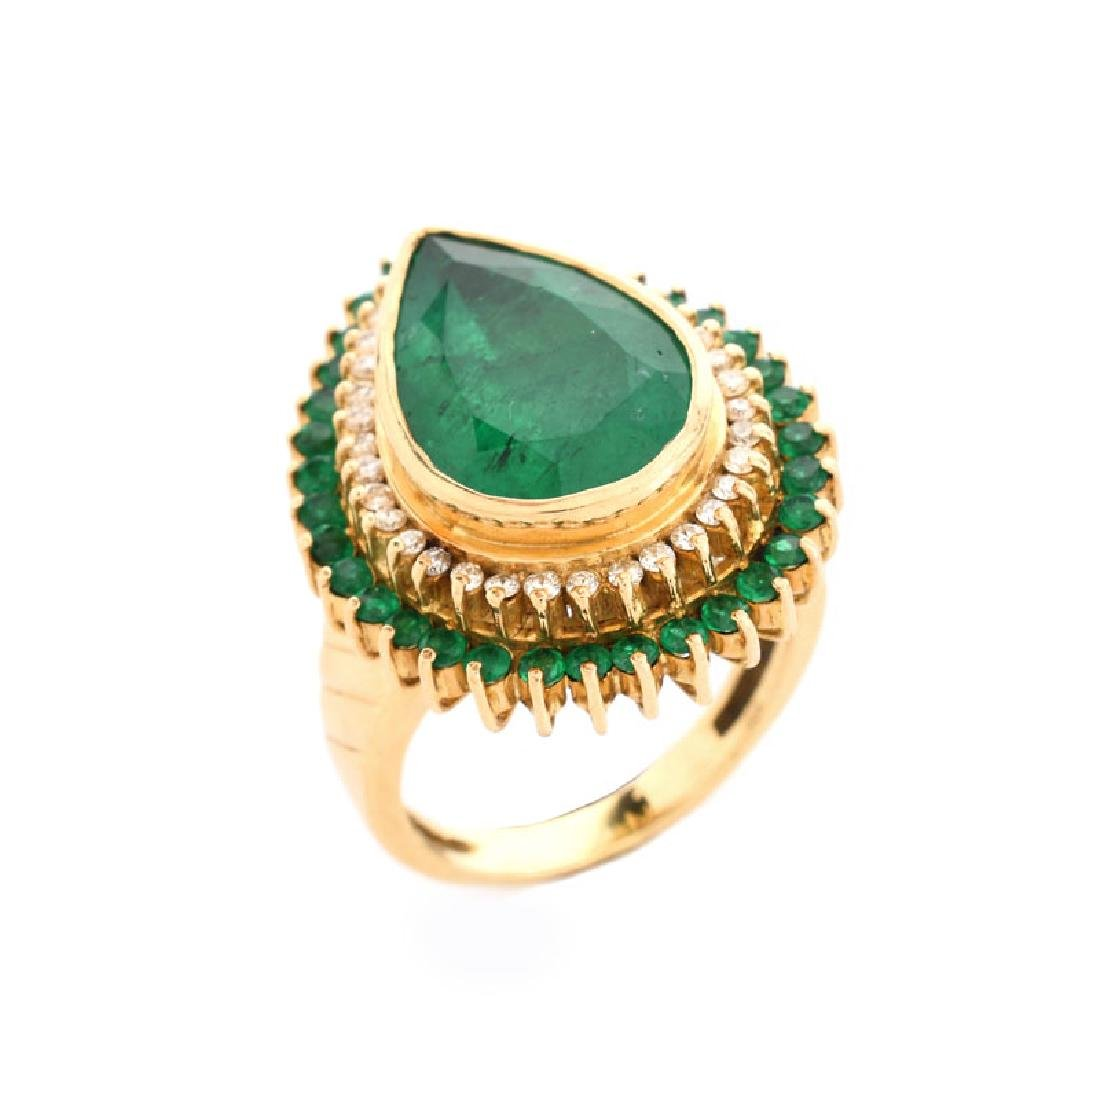 Approx. 7.50 Carat Pear Shape Colombian Emerald and 18